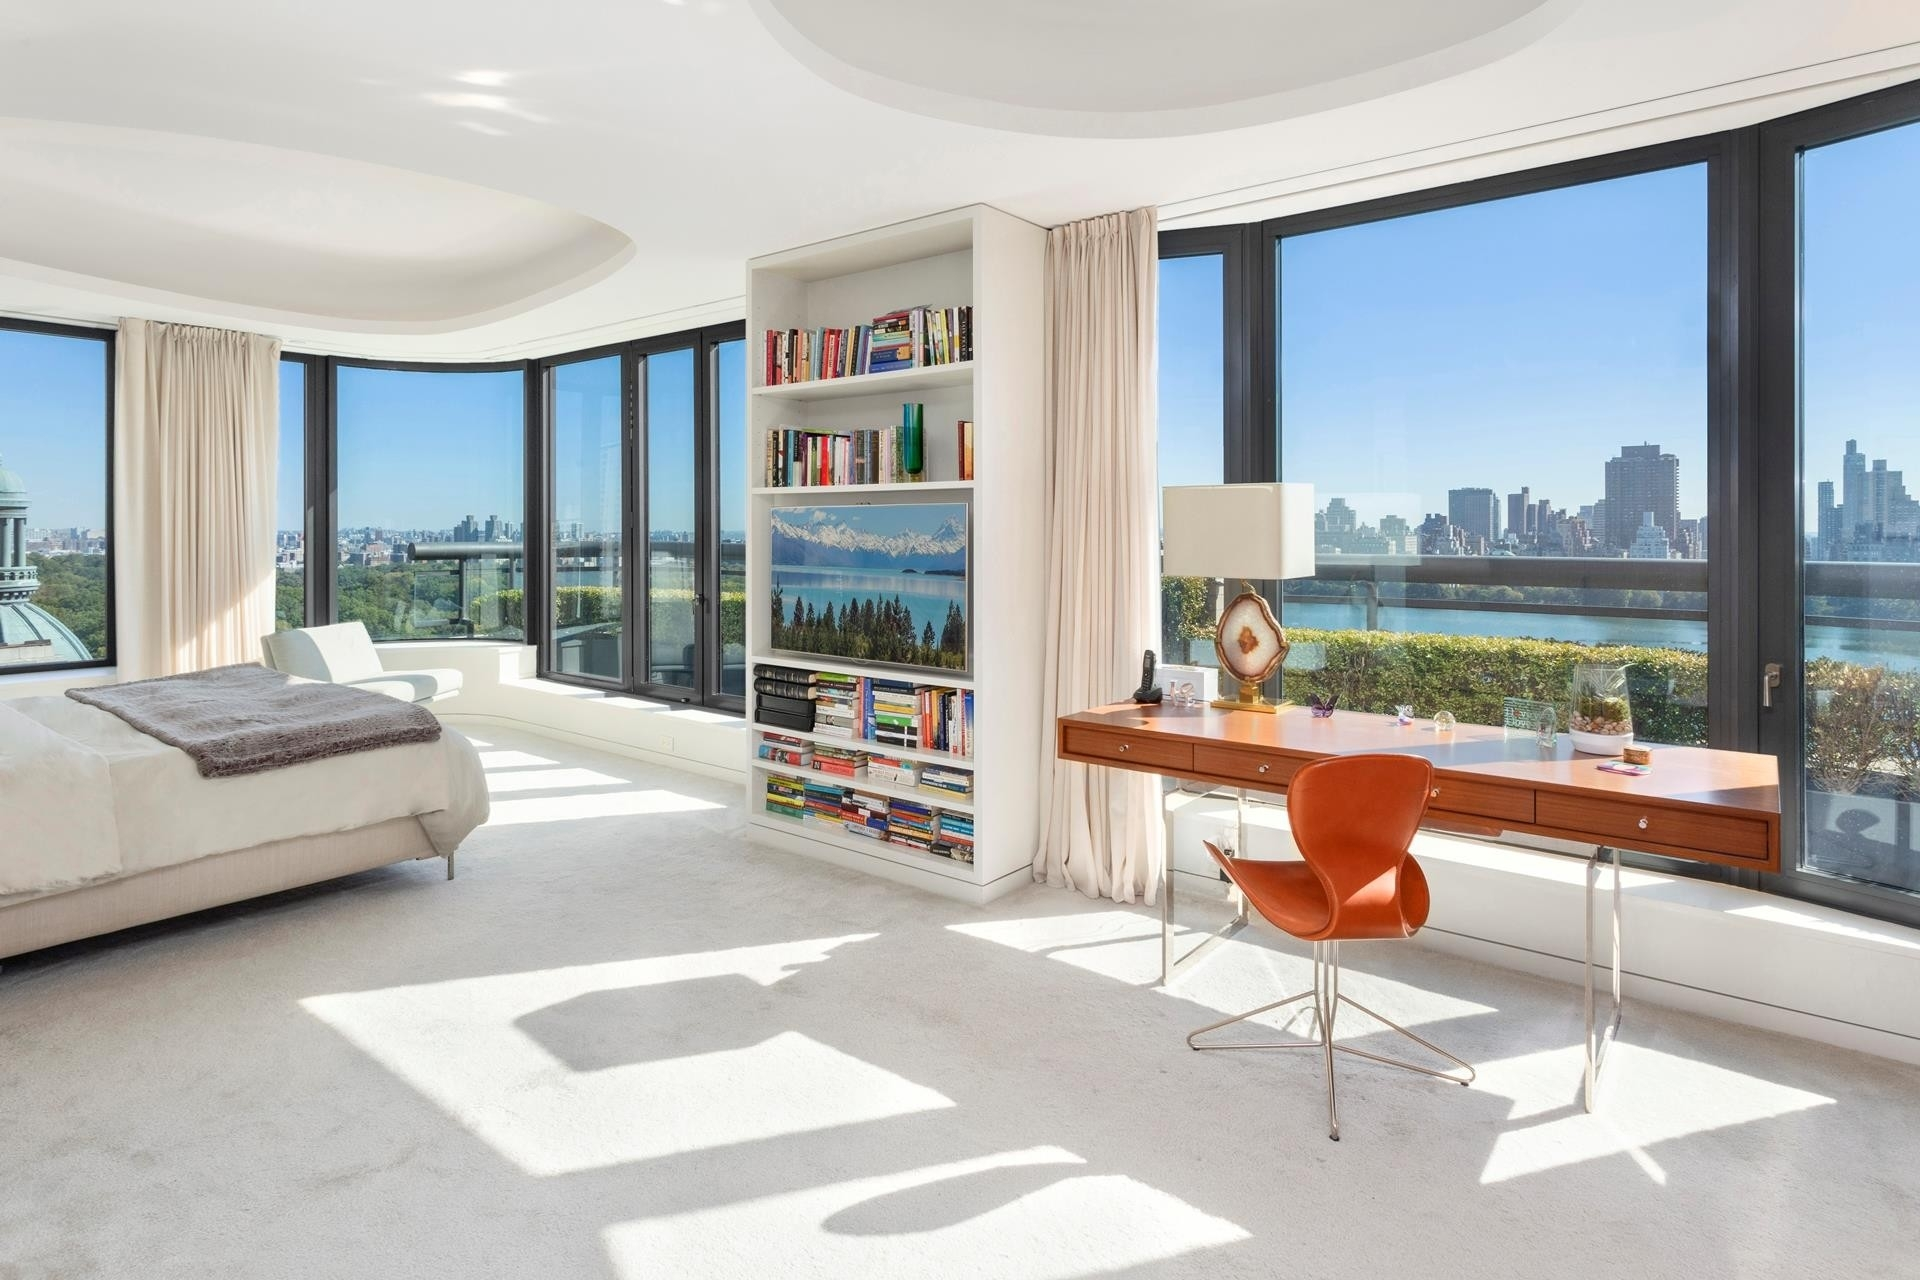 10. Condominiums for Sale at 279 CPW, 279 Central Park West, PHBA Upper West Side, New York, NY 10024